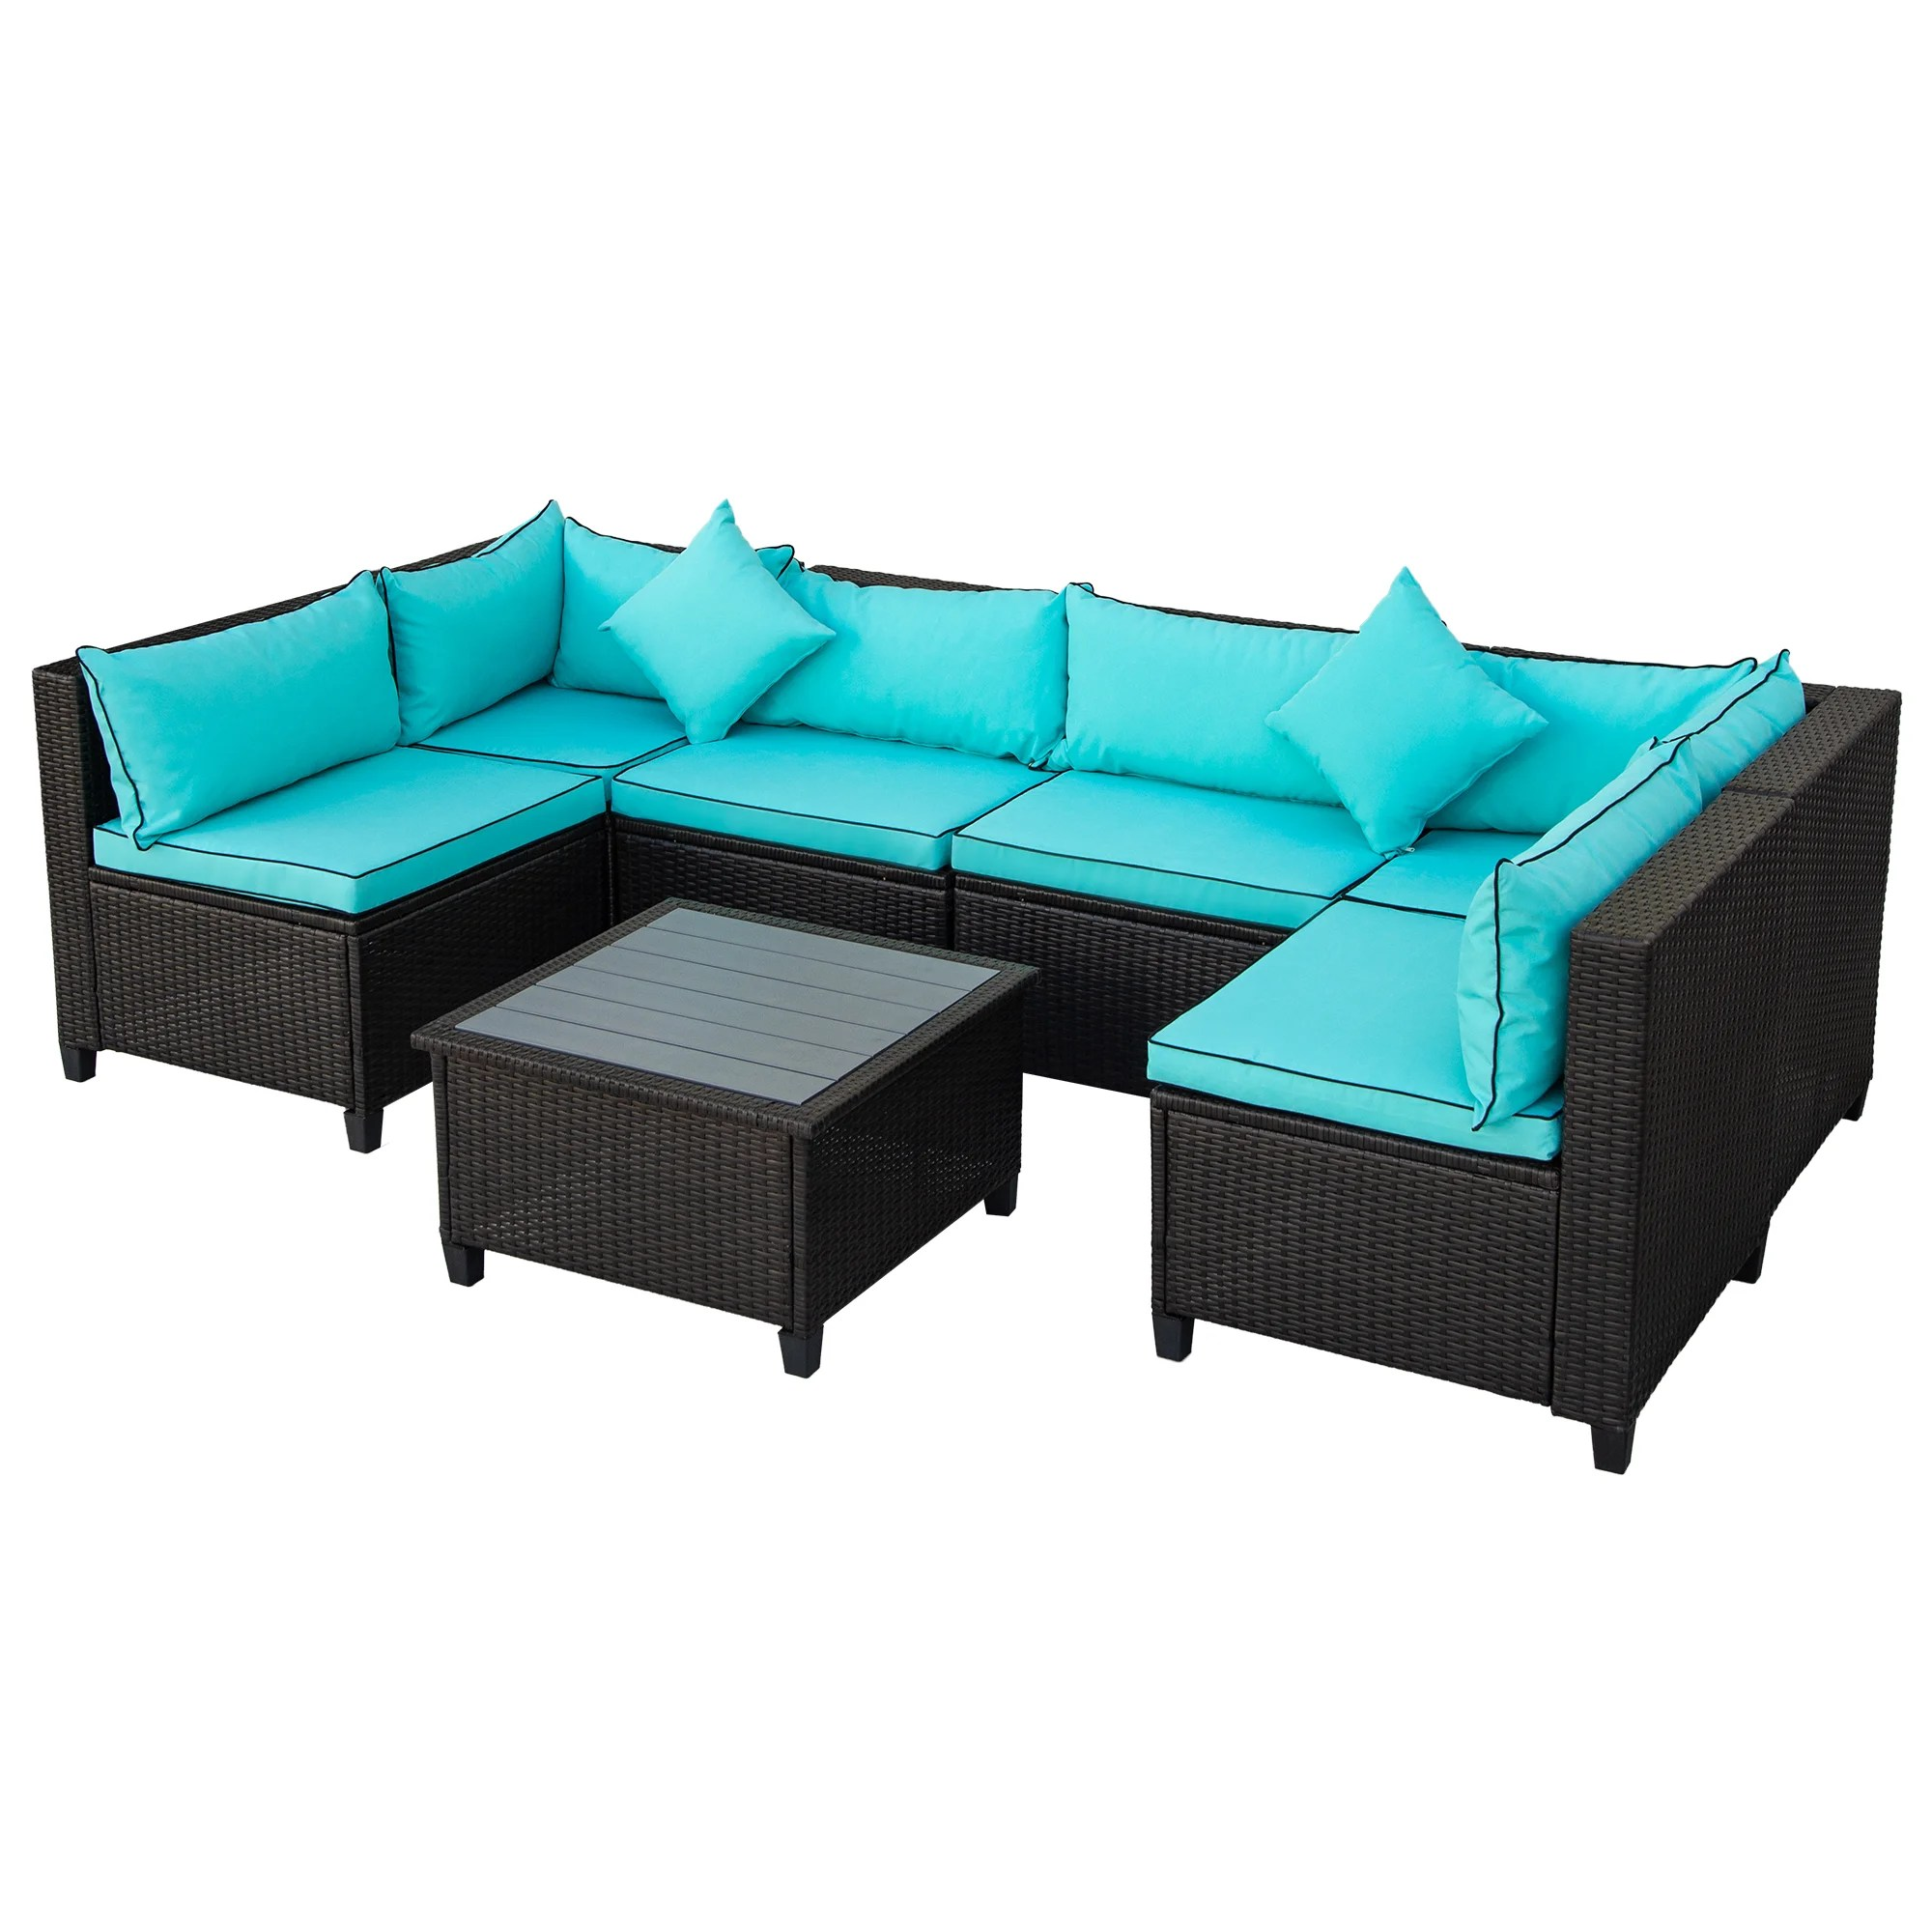 u shaped high quality rattan wicker patio kit u shaped cross section outdoor furniture kit with cushions and accent pillows